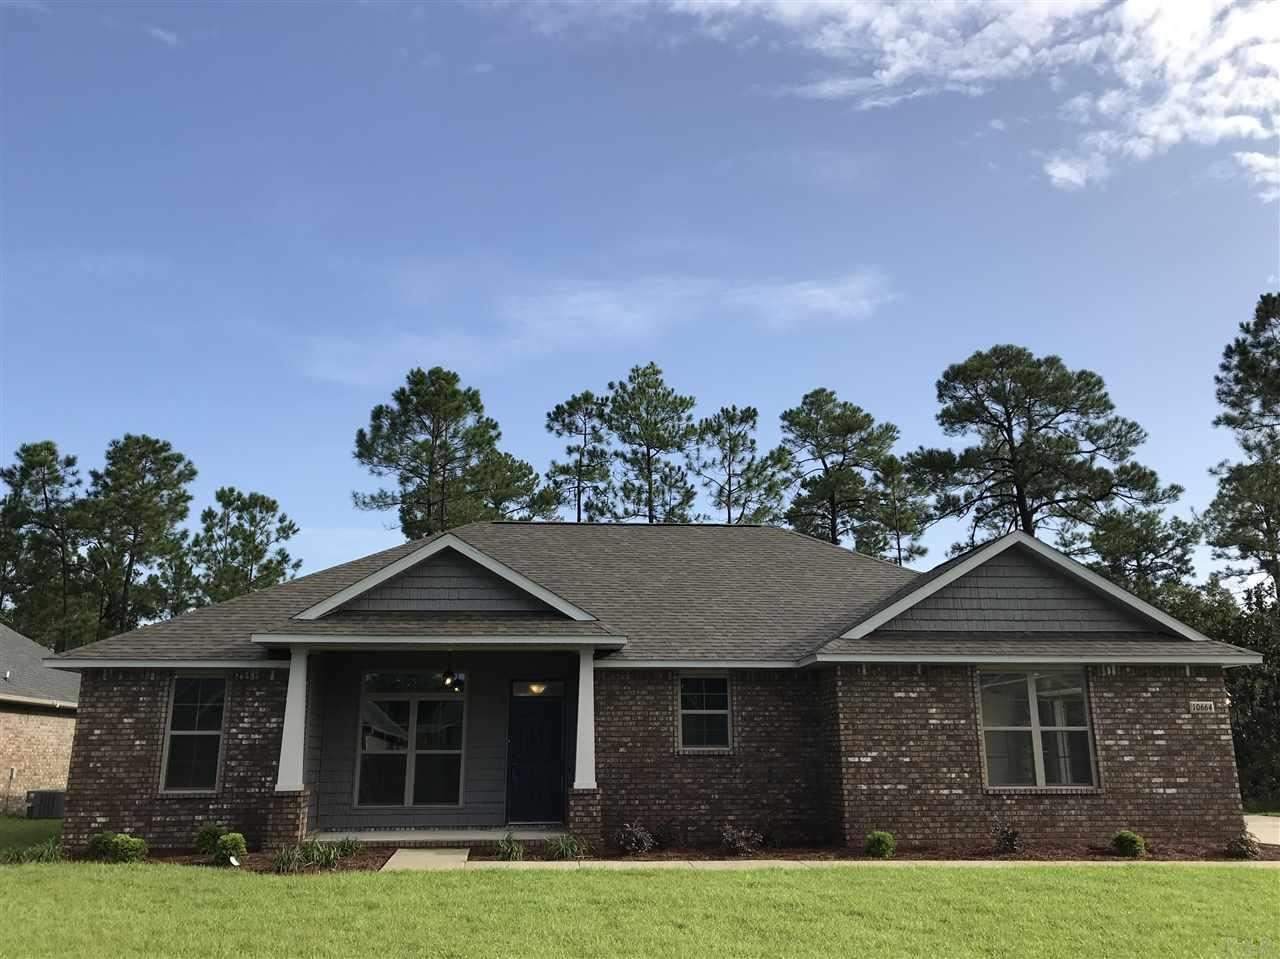 Photo for 10664 TRAILBLAZER WAY, PENSACOLA, FL 32506 (MLS # 548382)